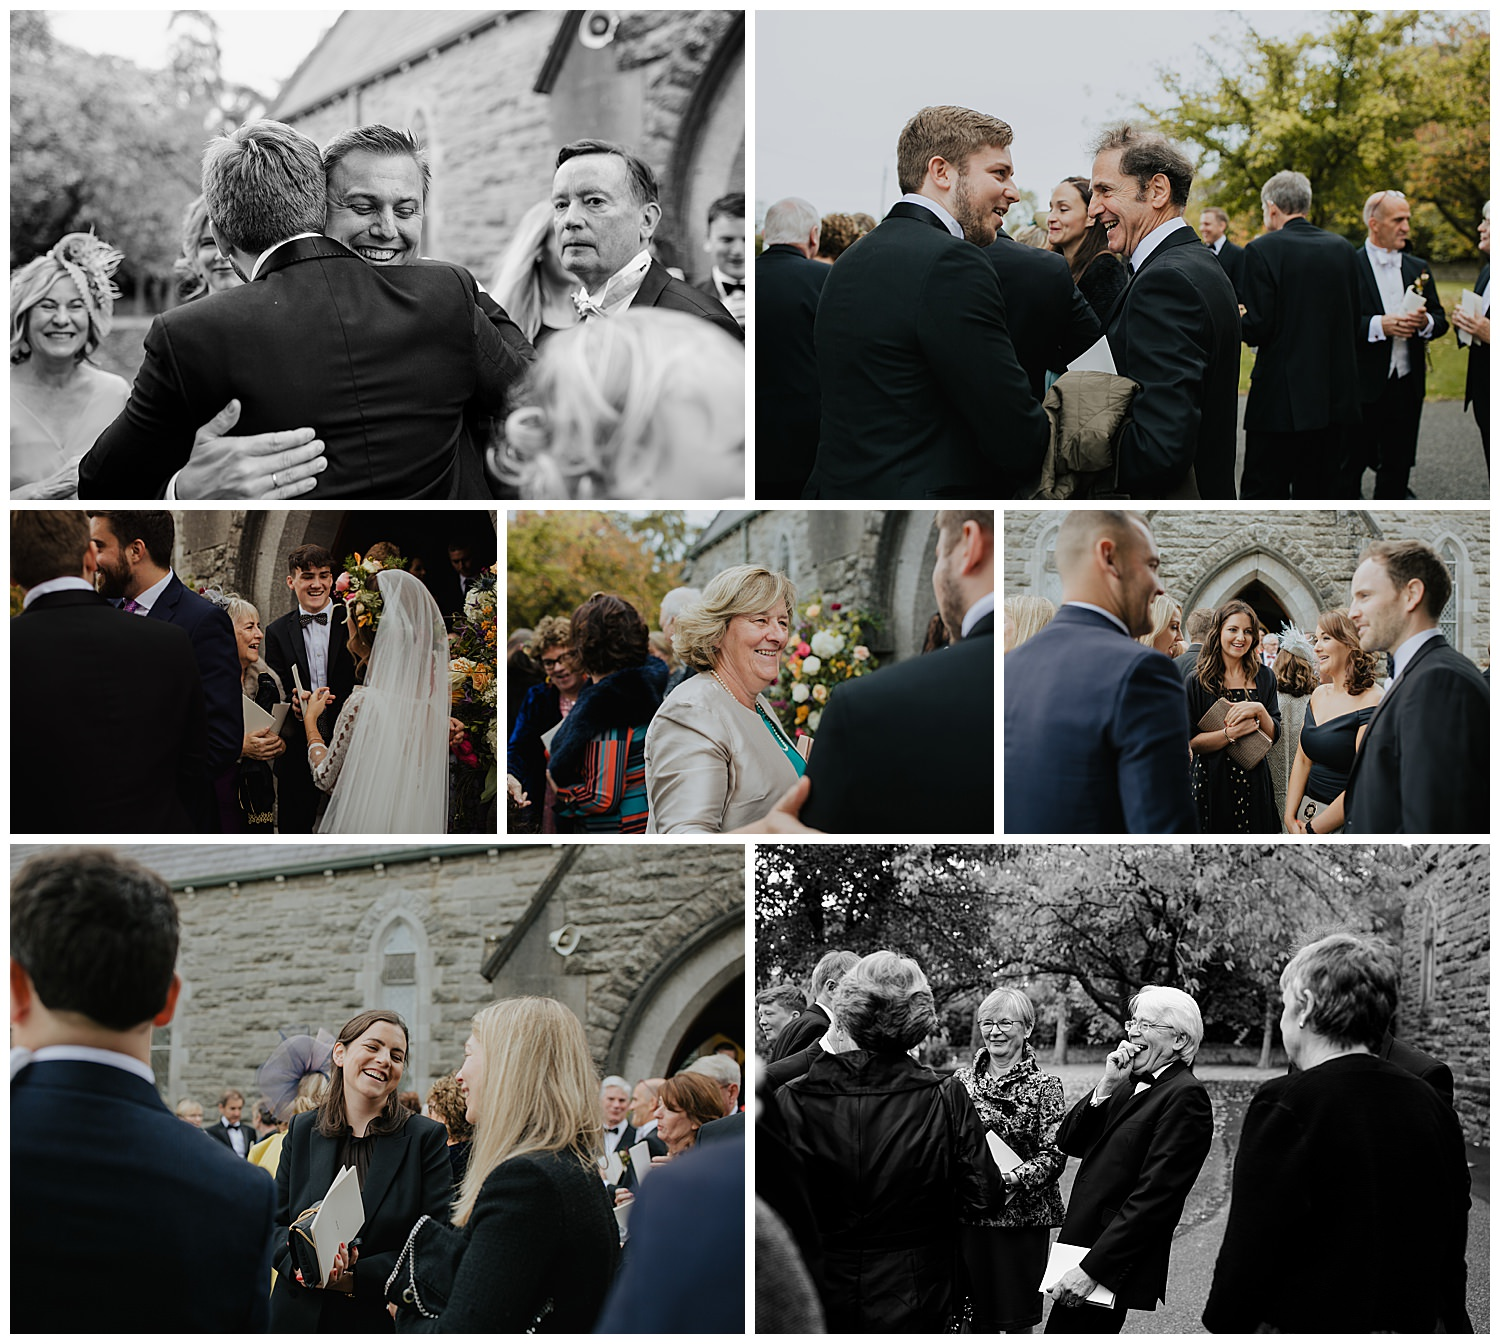 a+s_ballymagarvey_village_wedding_photographer_livia_figueiredo_29.jpg